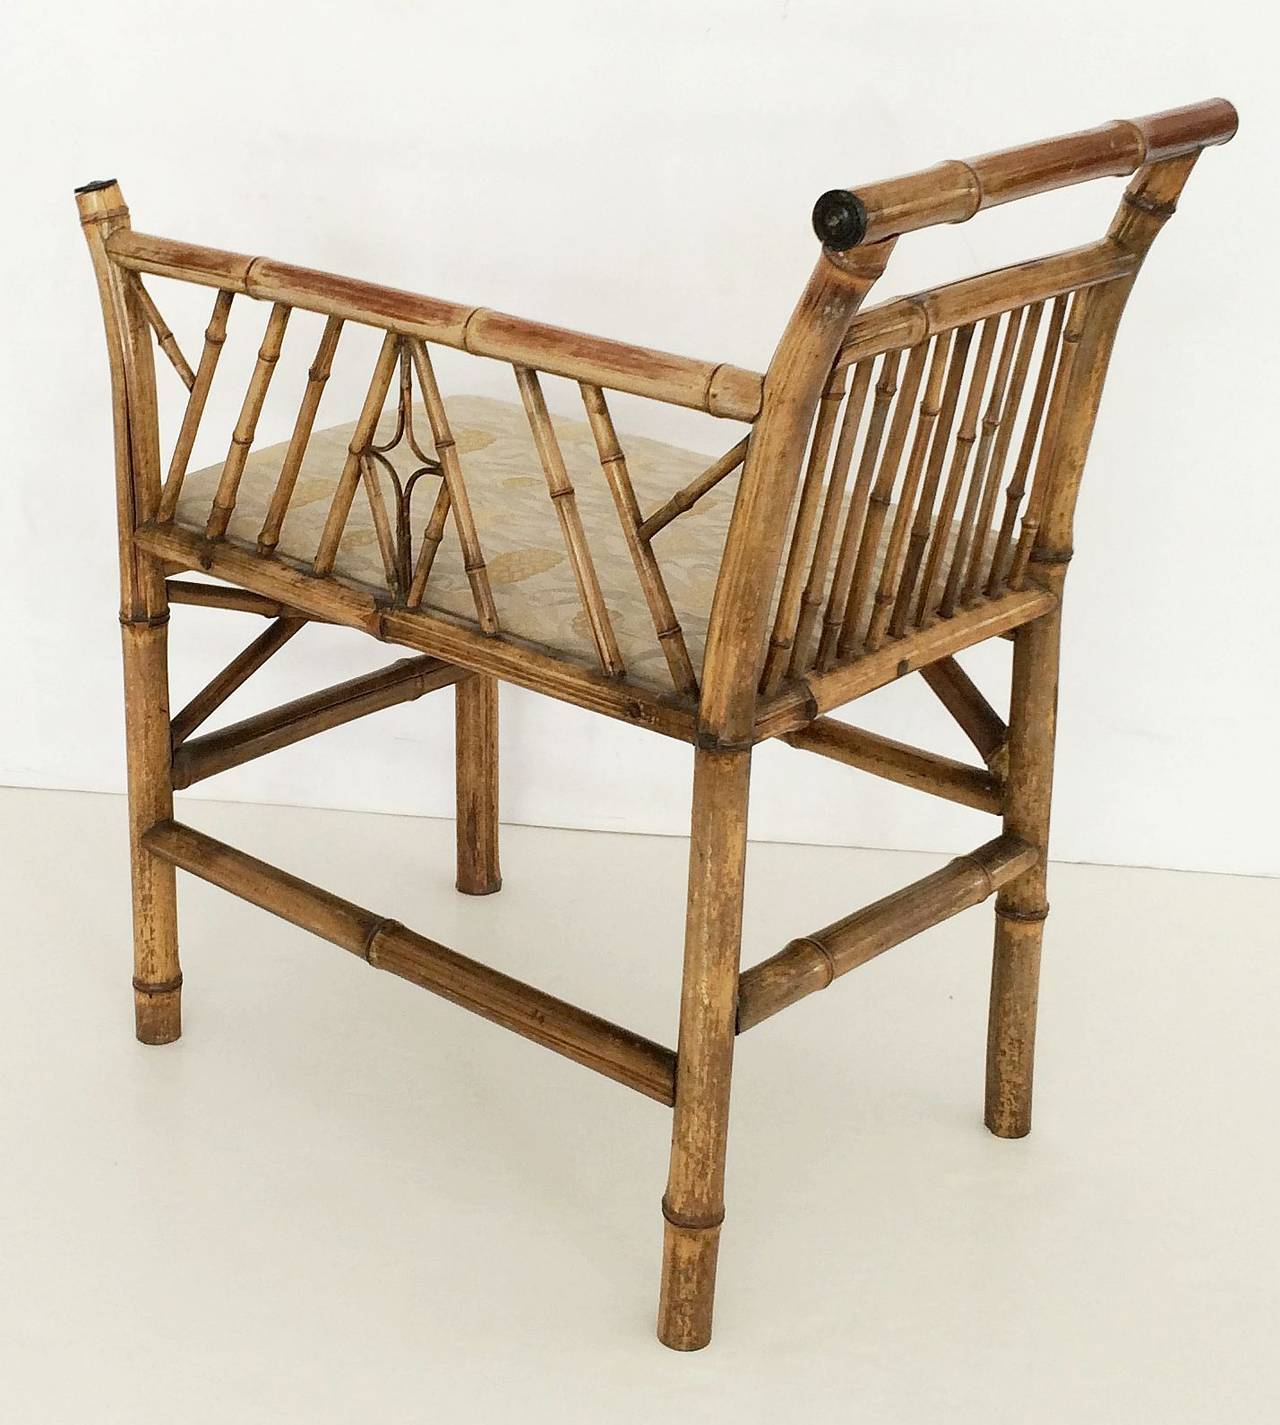 19th Century English Bamboo Upholstered Bench Seat For Sale